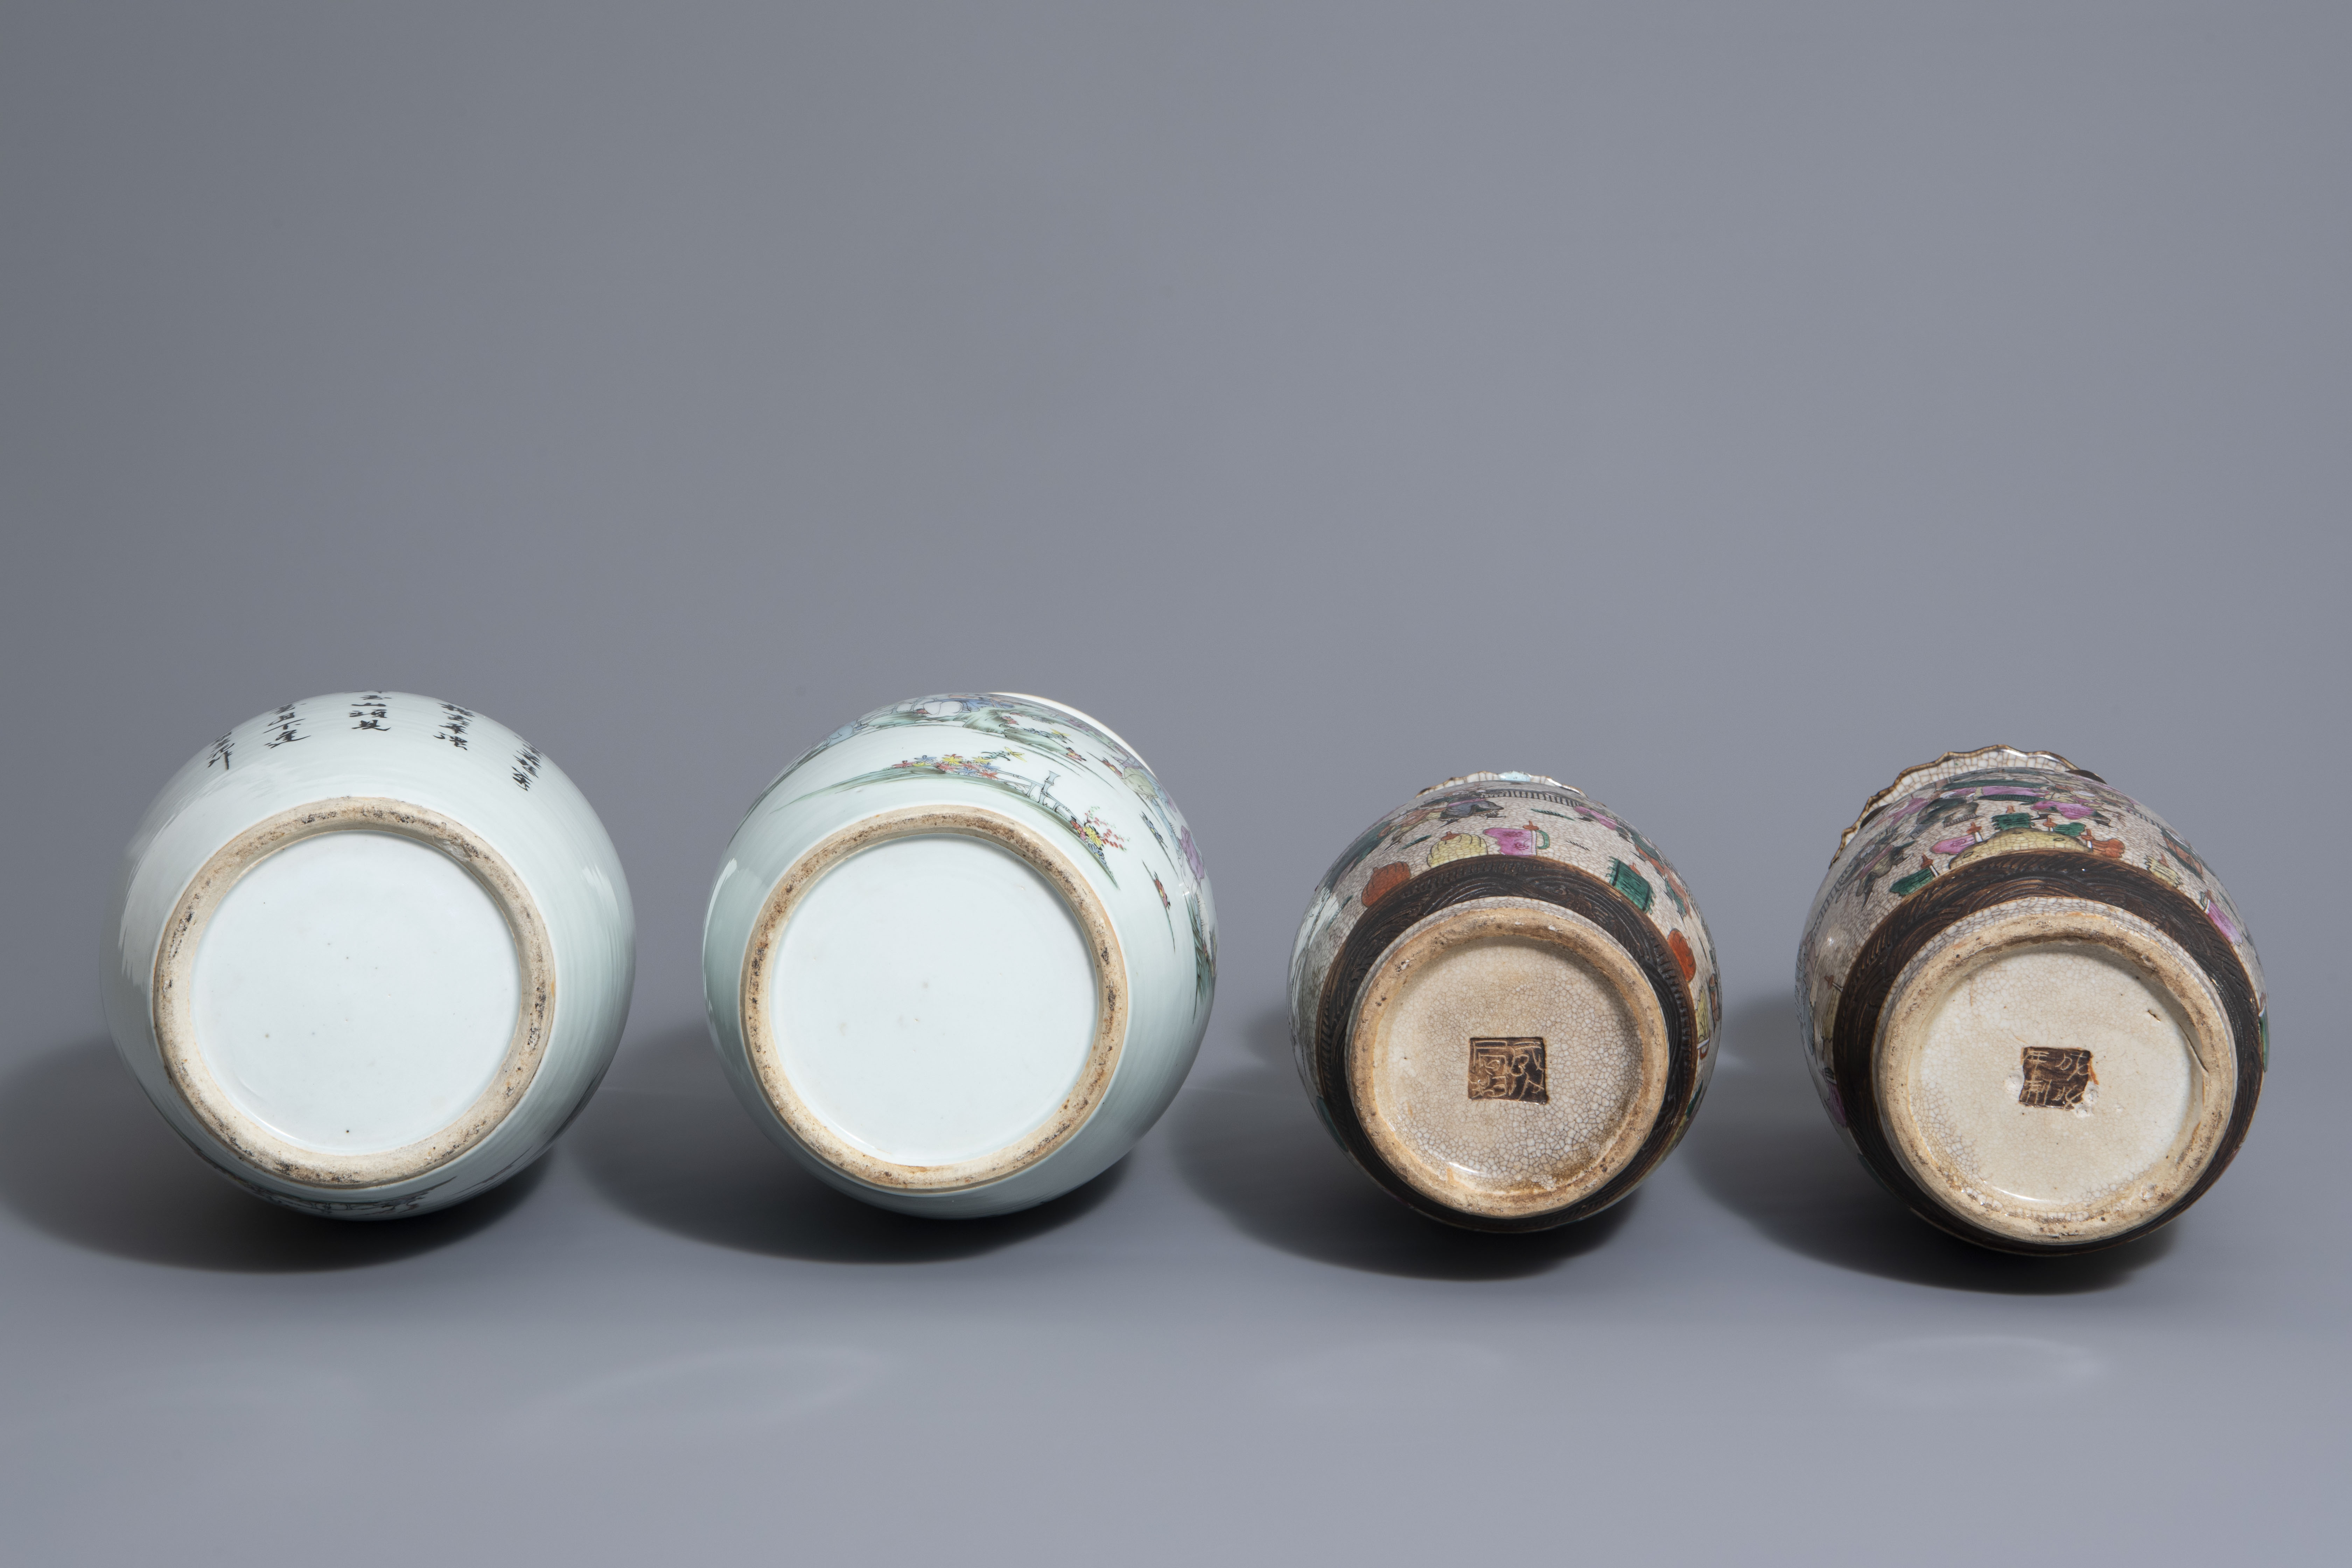 Two pairs of Chinese famille rose and Nanking crackle glazed vases, 19th/20th C. - Image 7 of 7